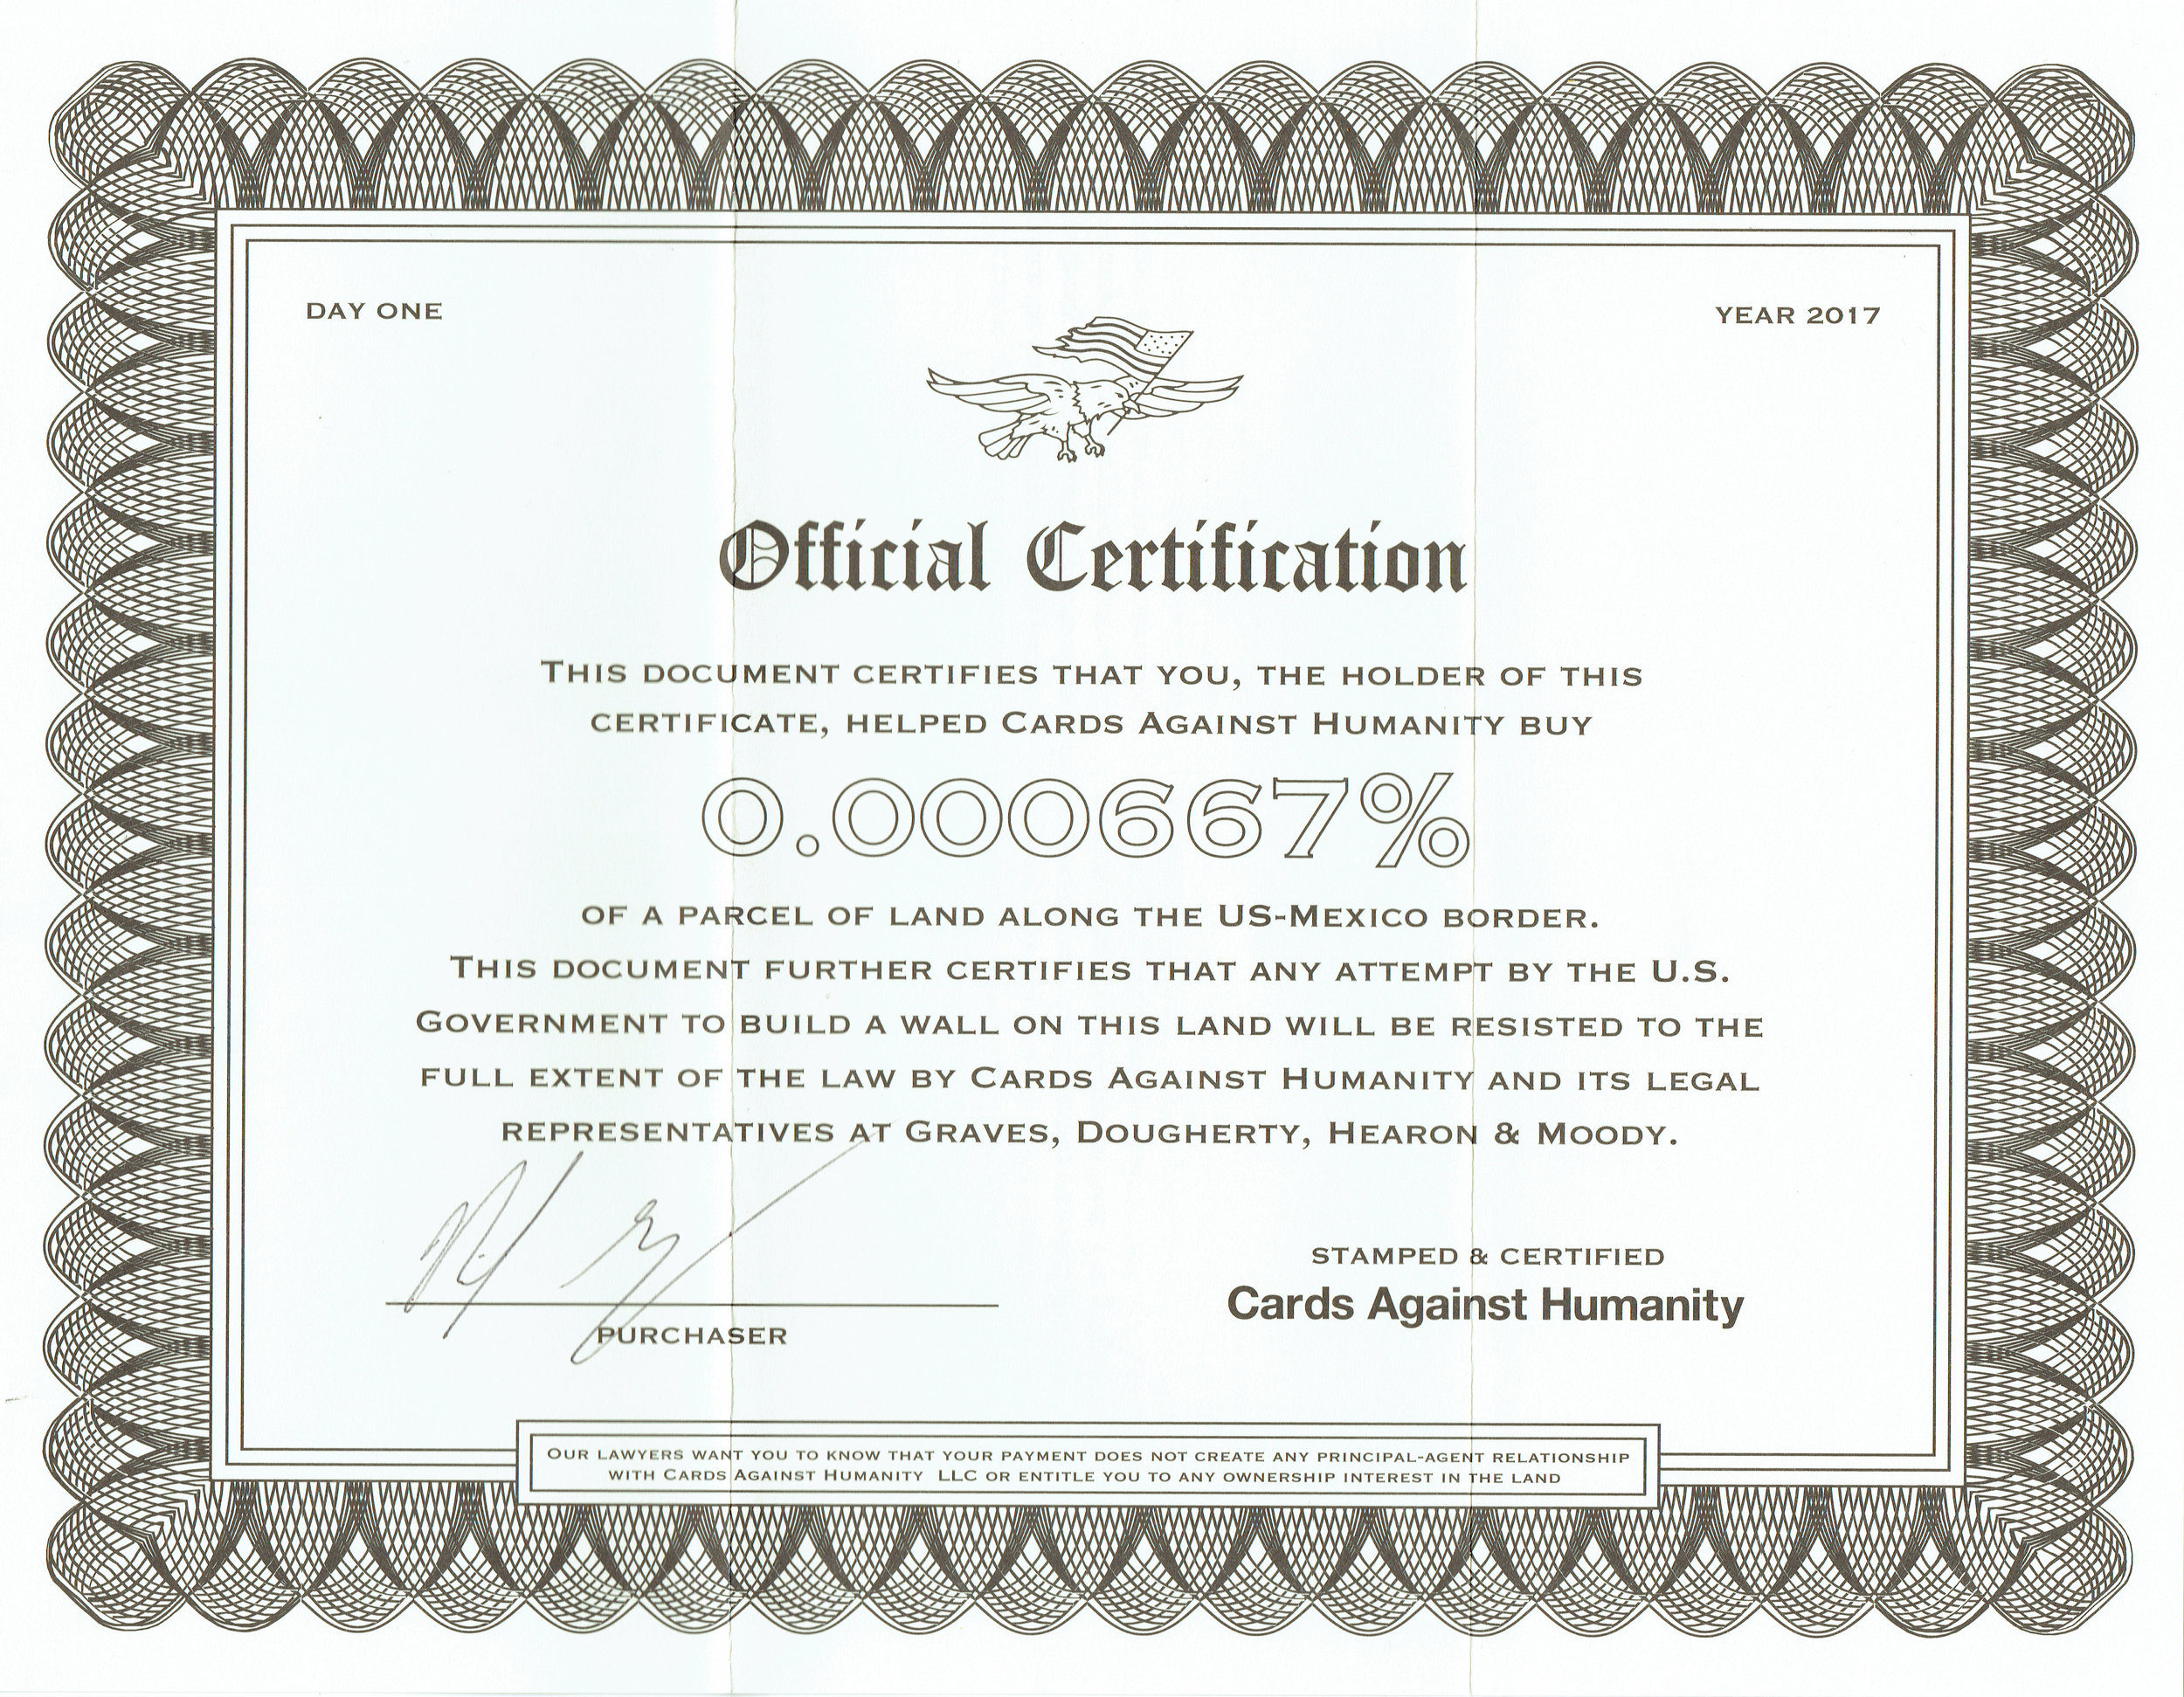 Cards Against Humanity Saves America Day One certificate of purchase.